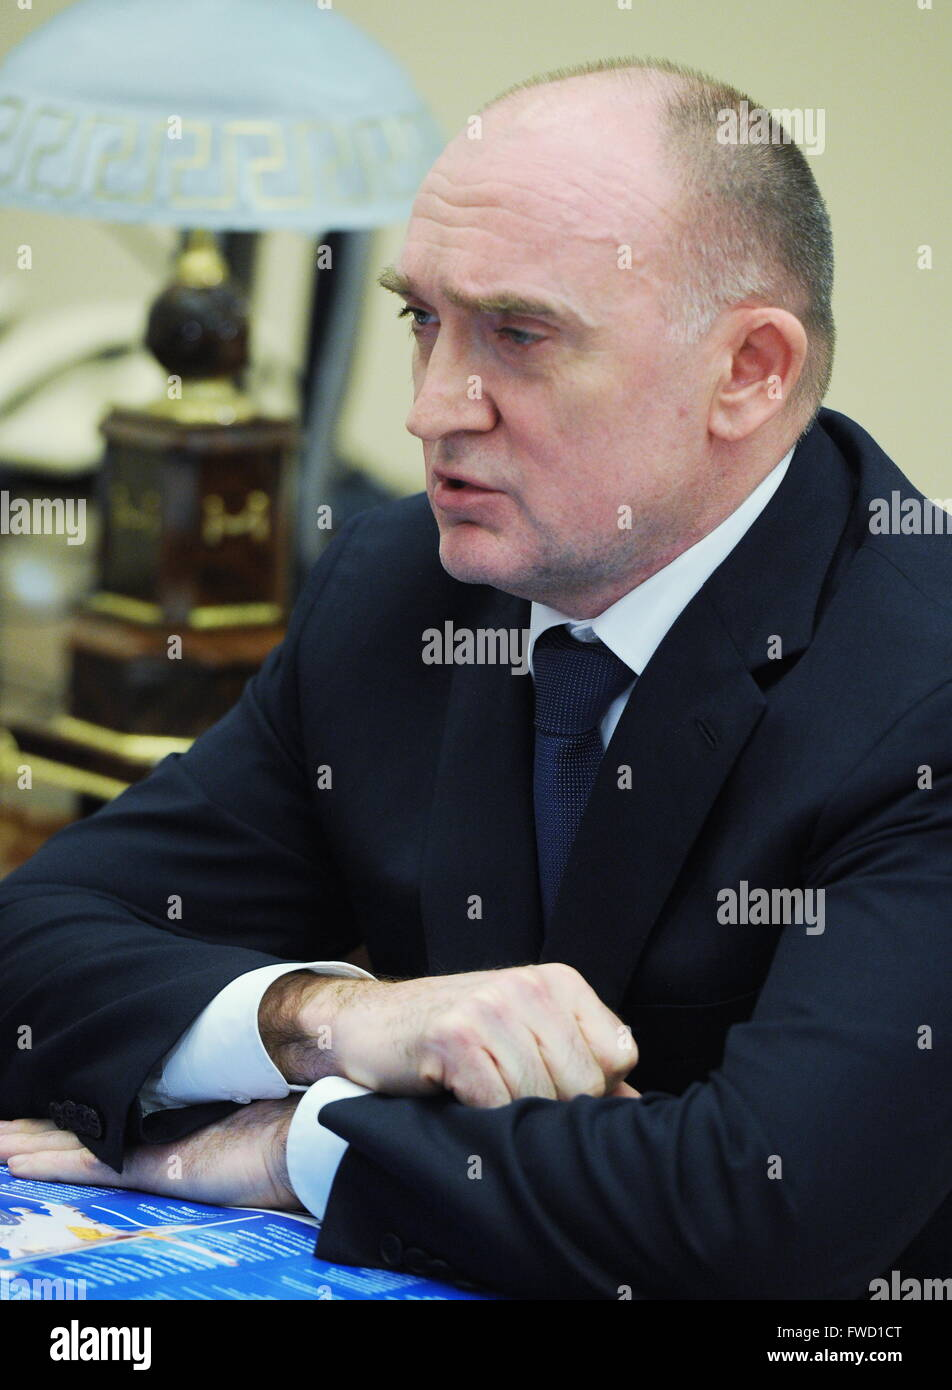 Moscow Region, Russia. 4th Apr, 2016. Chelyabinsk Region Governor Boris Dubrovsky looks on during a meeting with - Stock Image